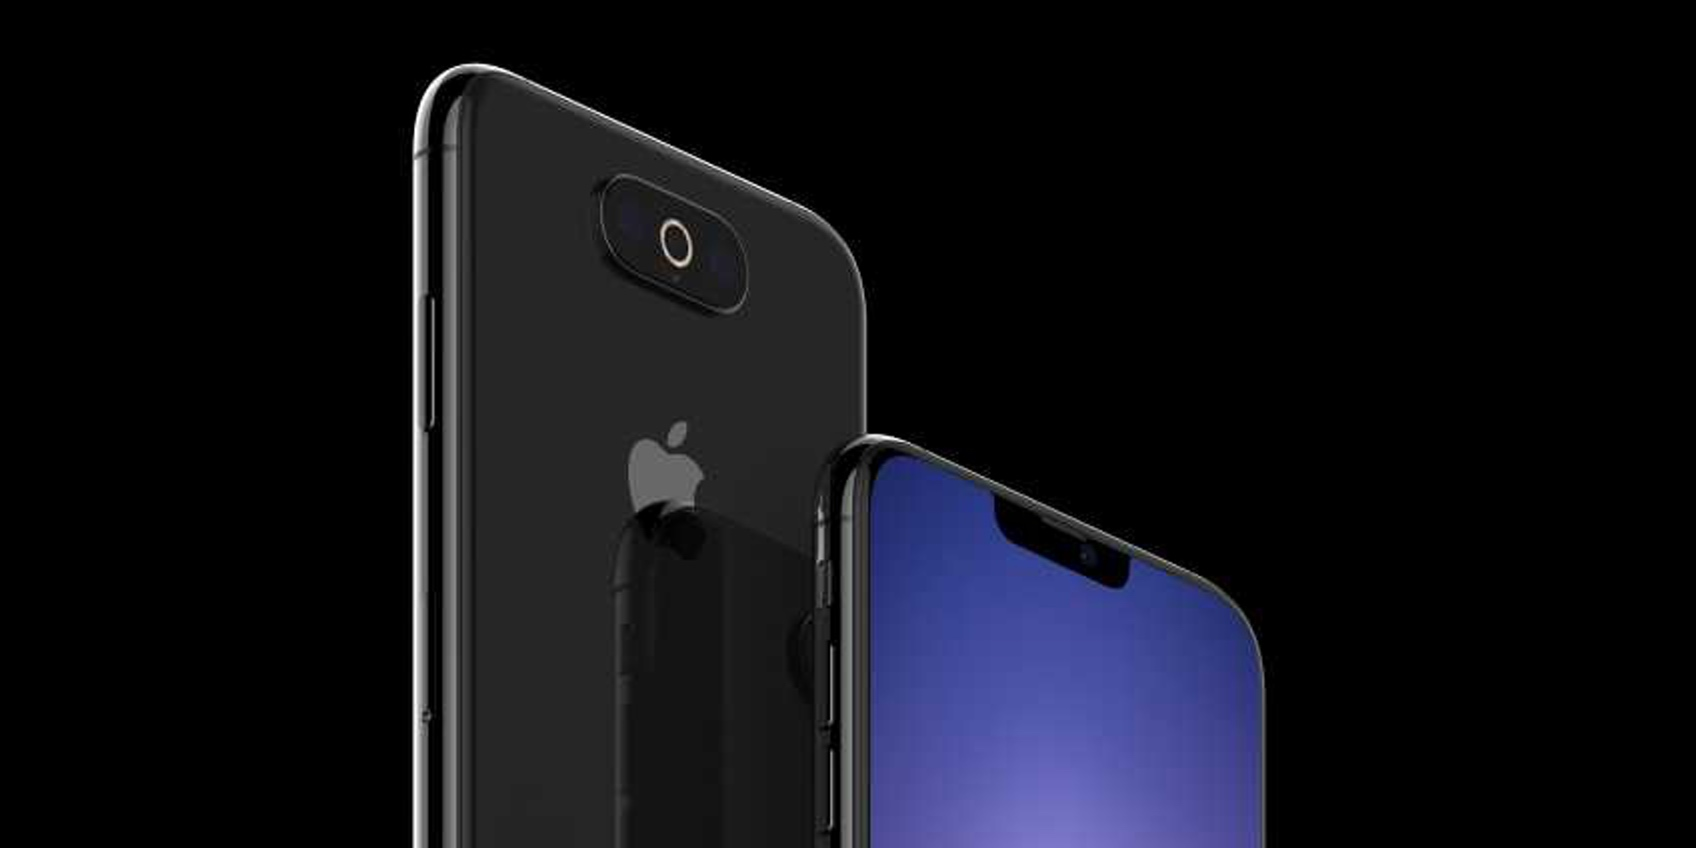 Renders show another supposed iPhone 11 prototype with smaller notch, sleeker camera bump design